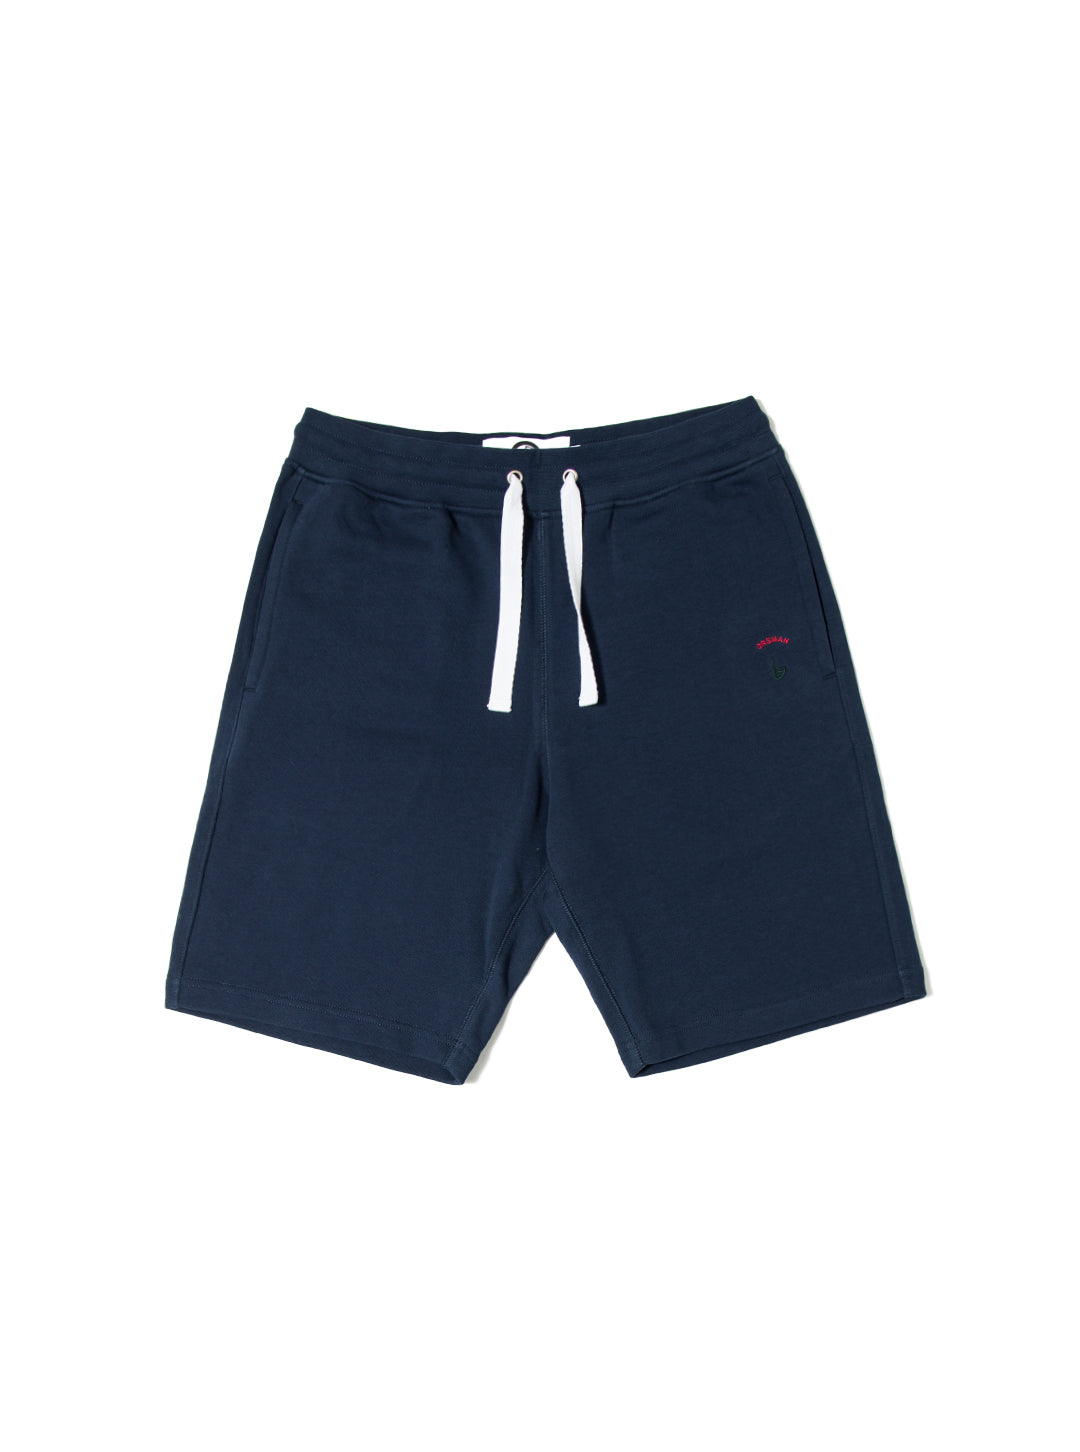 Orsman Guide Track Short Navy